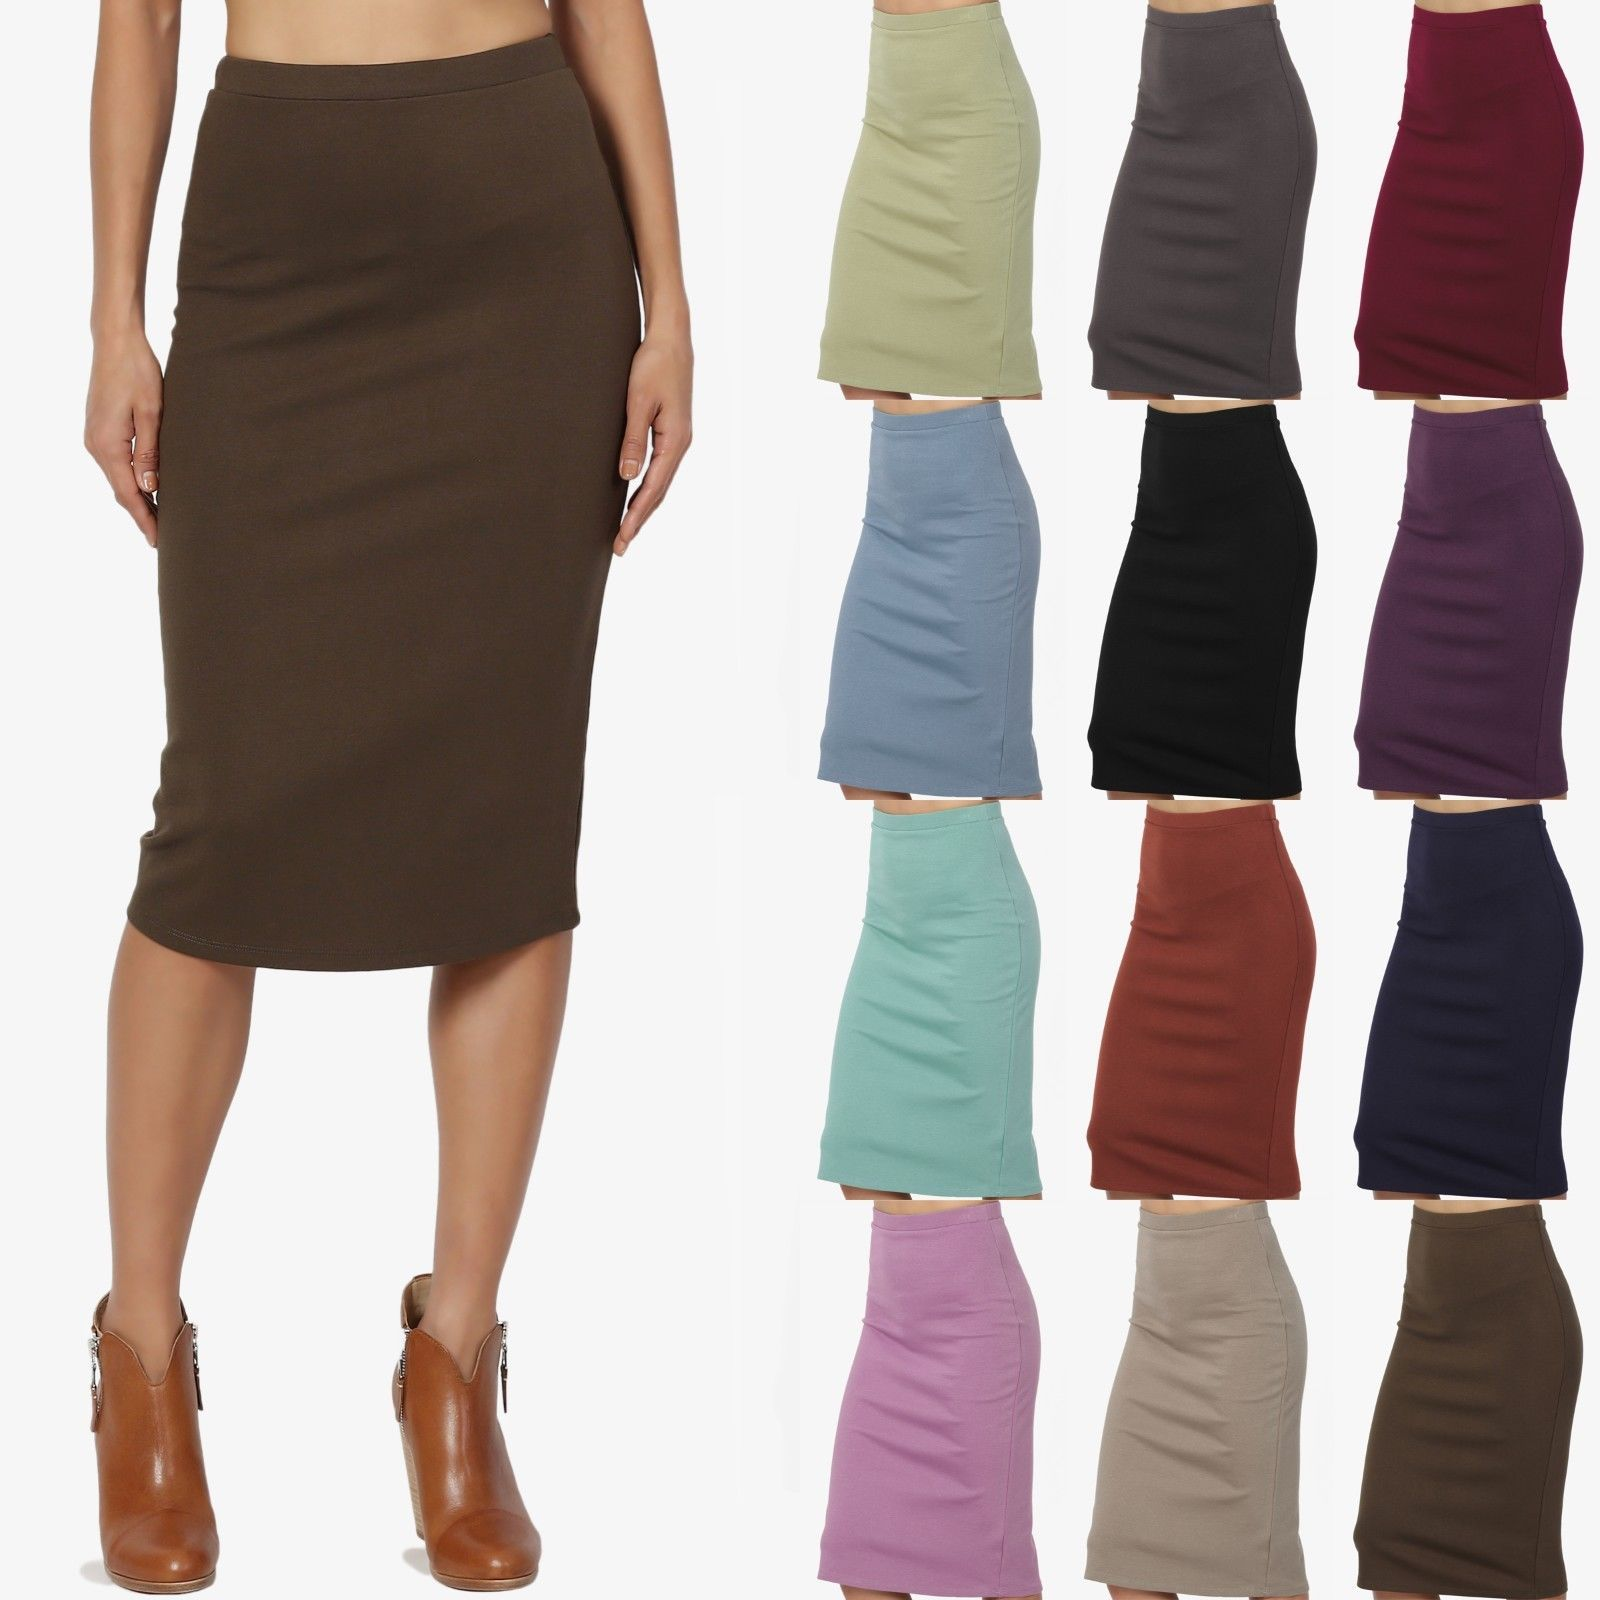 TheMogan Womens Elastic High Waisted Knee Length A-line Pleated Knit Midi Skirt